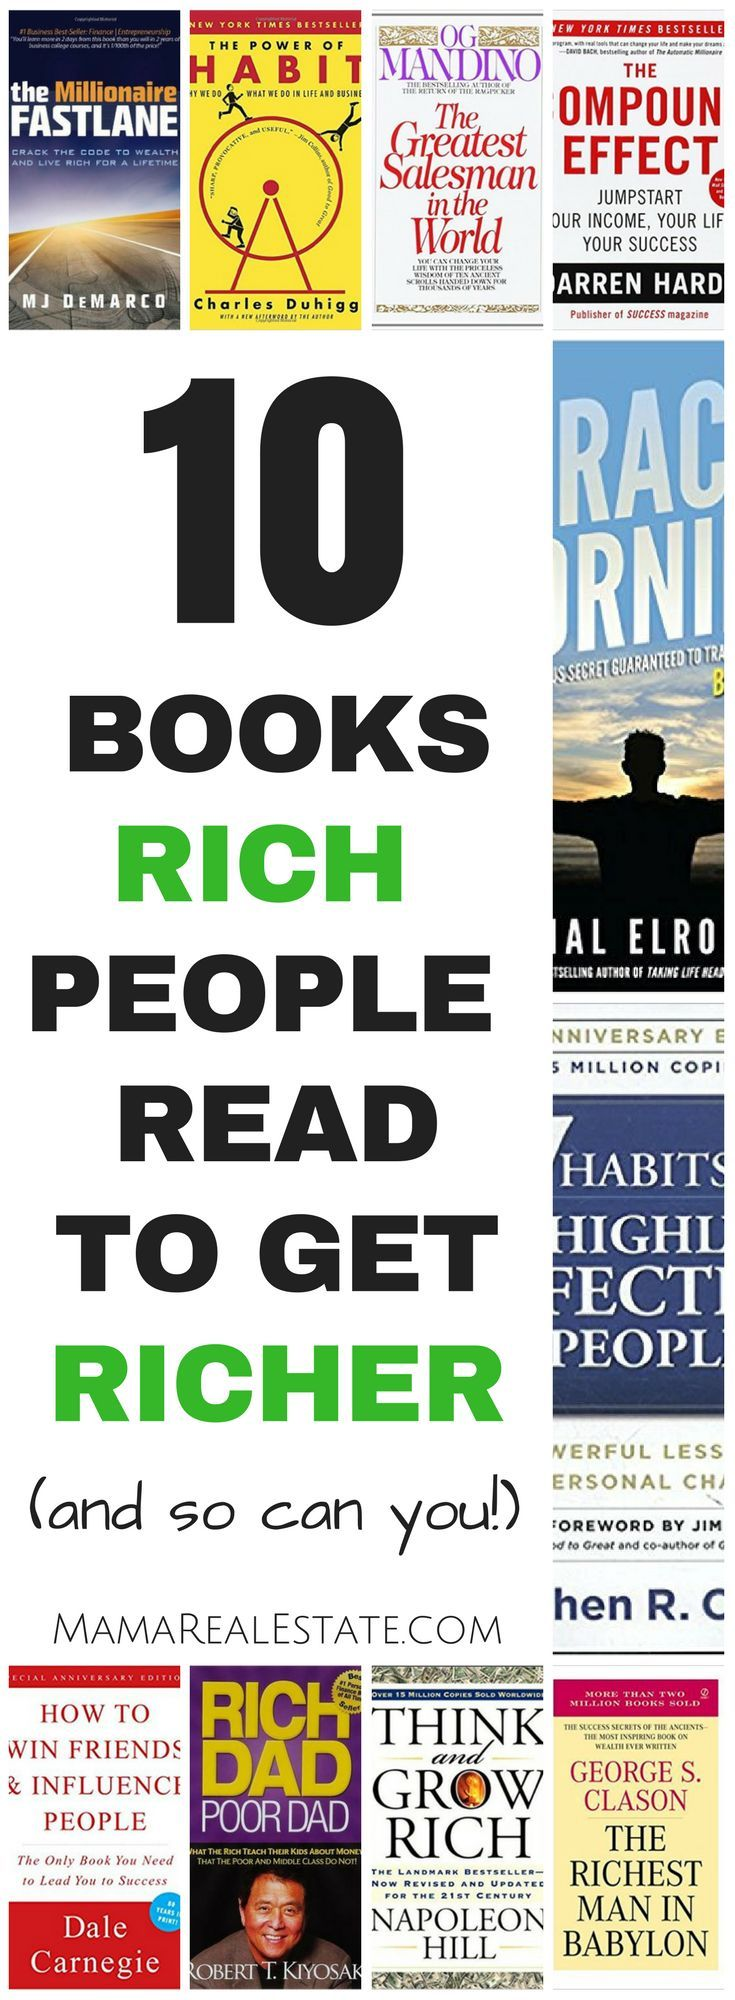 Here Are The Top 10 Books To Read To Build Wealth As Recommended By Our  Country's